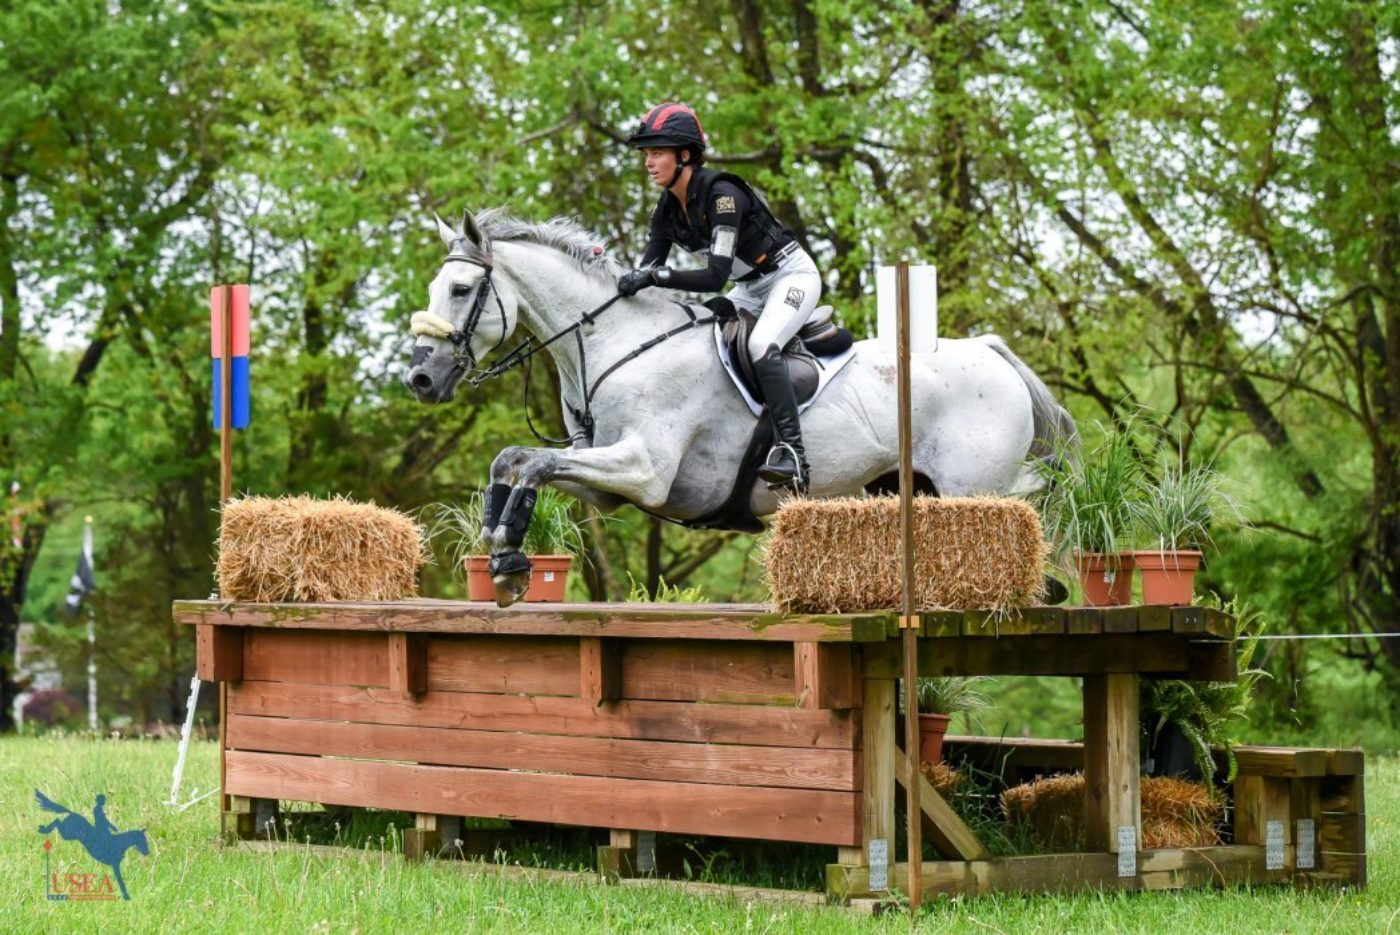 6thT - Caroline Martin and Islandwood Captain Jack - 43.1